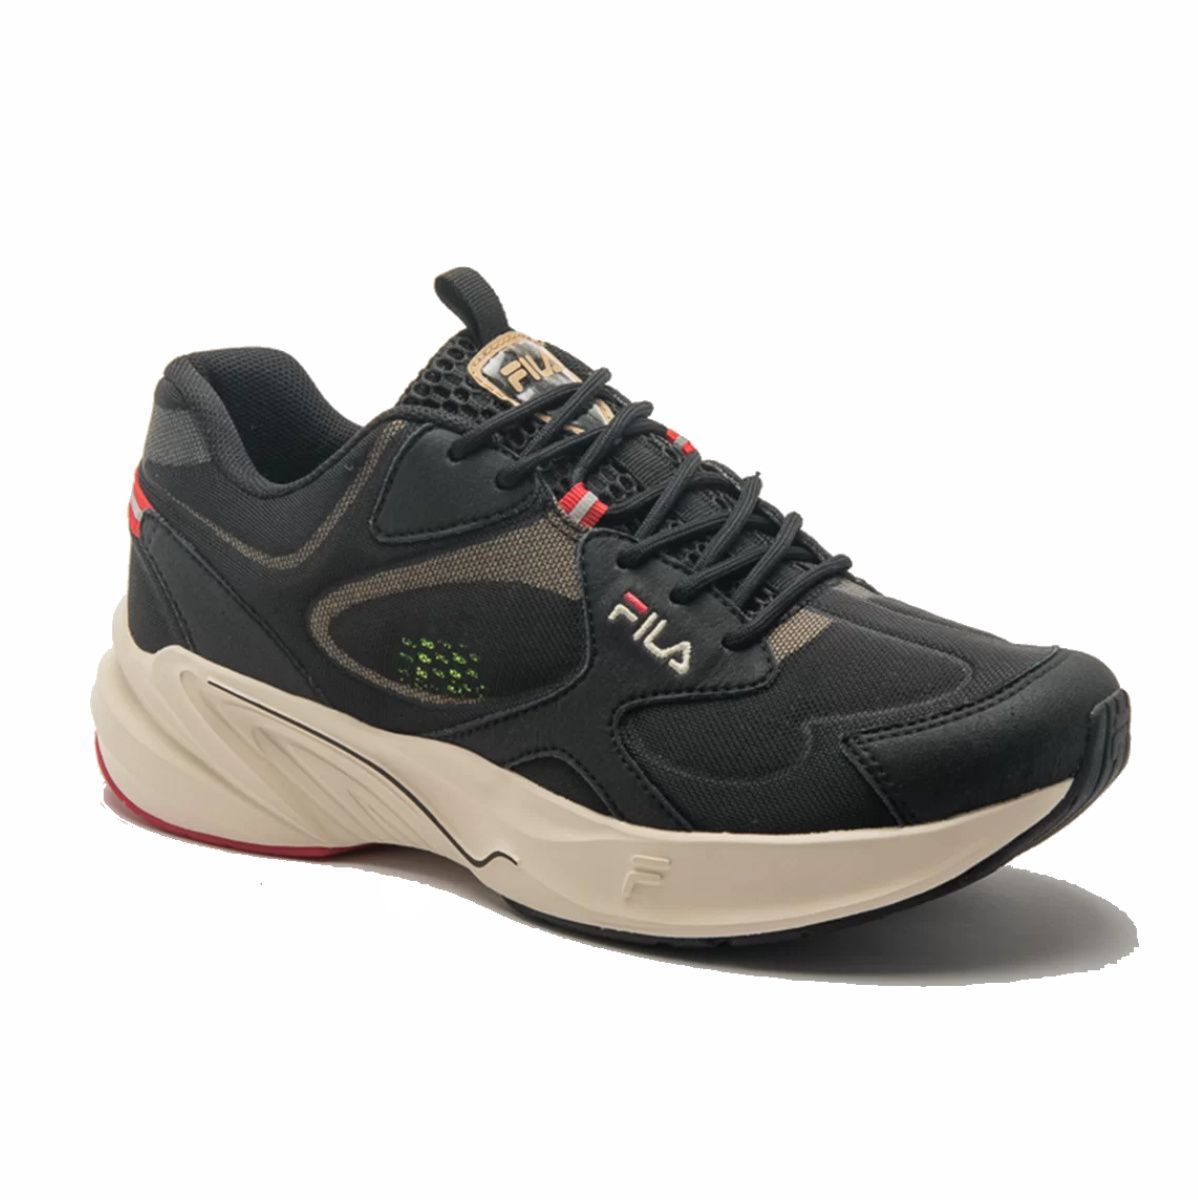 Tenis Fila Carrera Tech Masculino Training Running